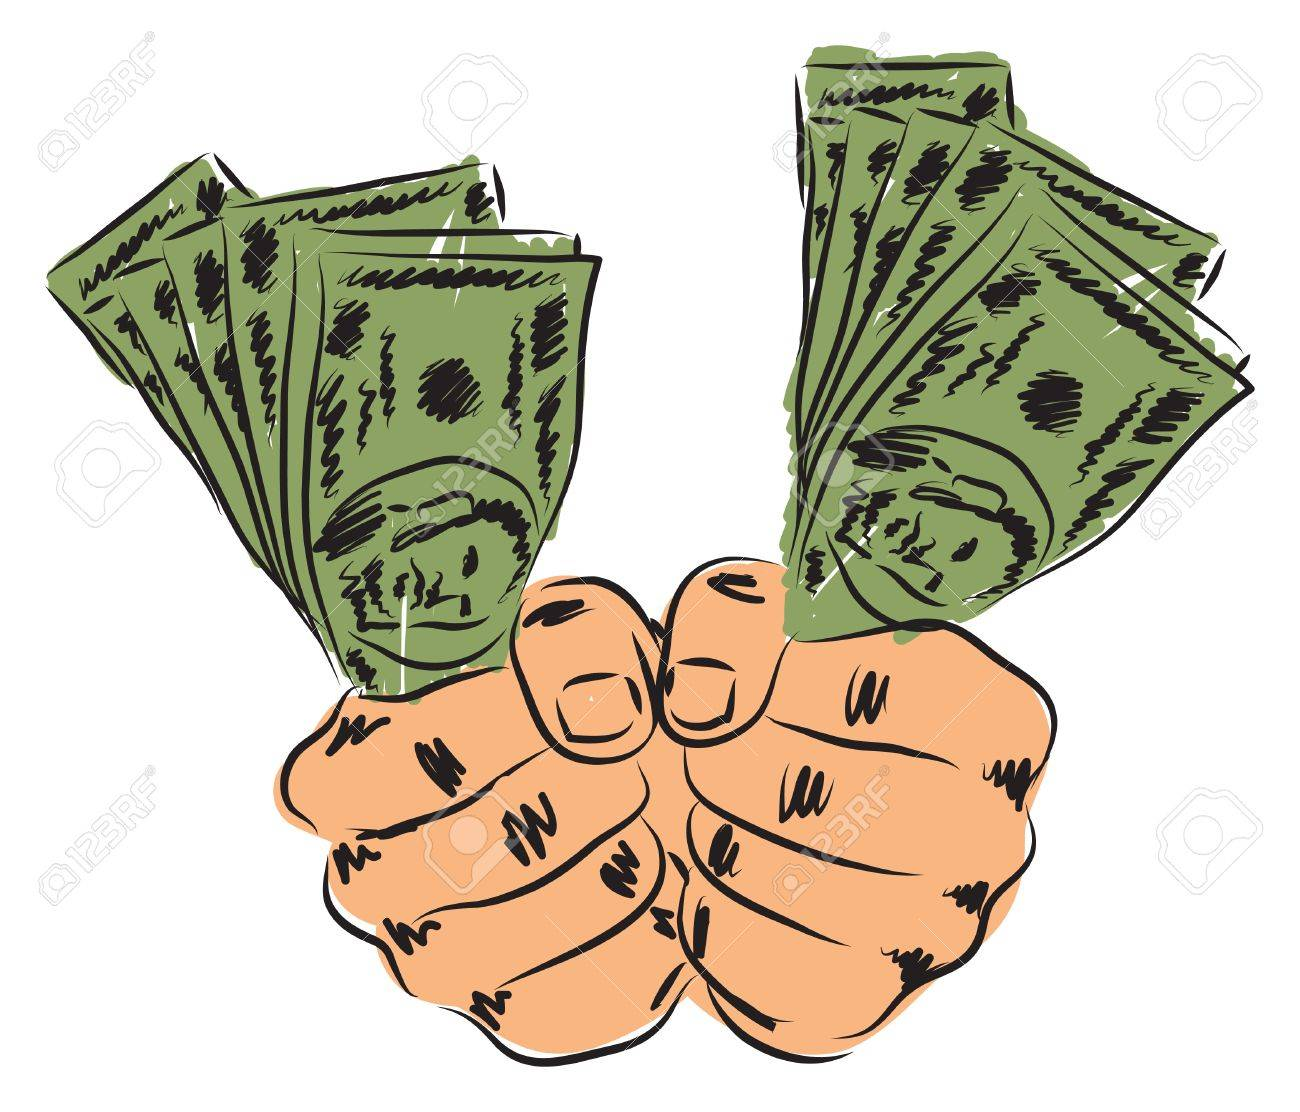 Hands And Money Illustration Royalty Free Cliparts, Vectors.